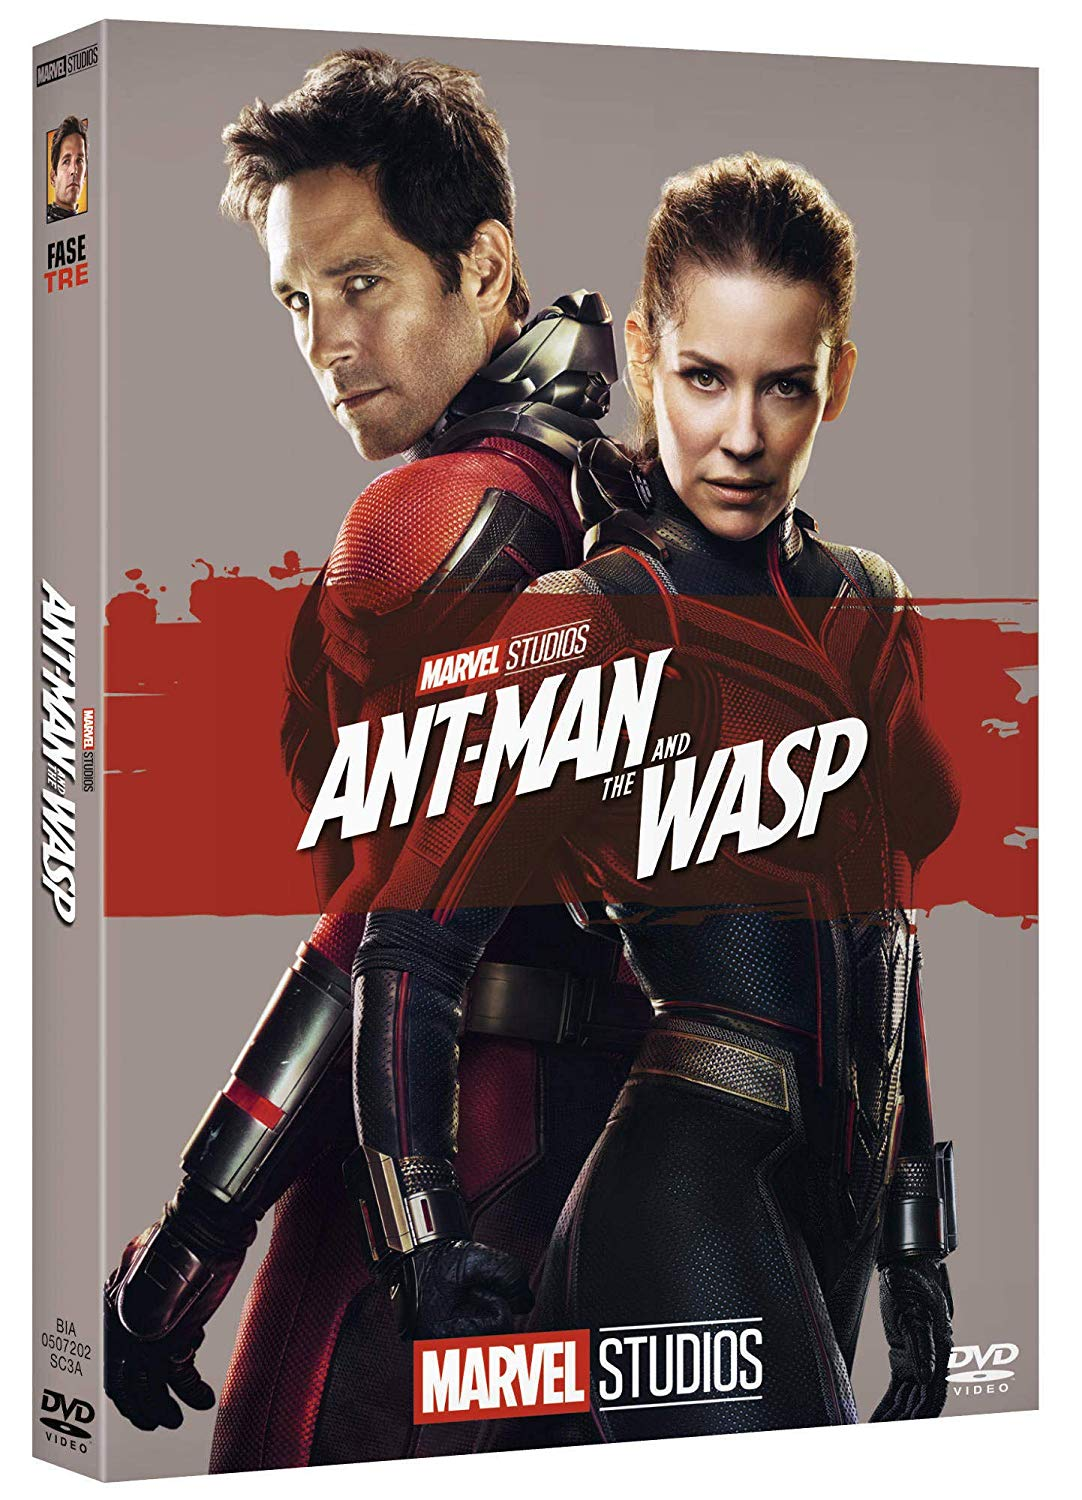 ANT-MAN AND THE WASP (10 ANNIVERSARIO) (DVD)